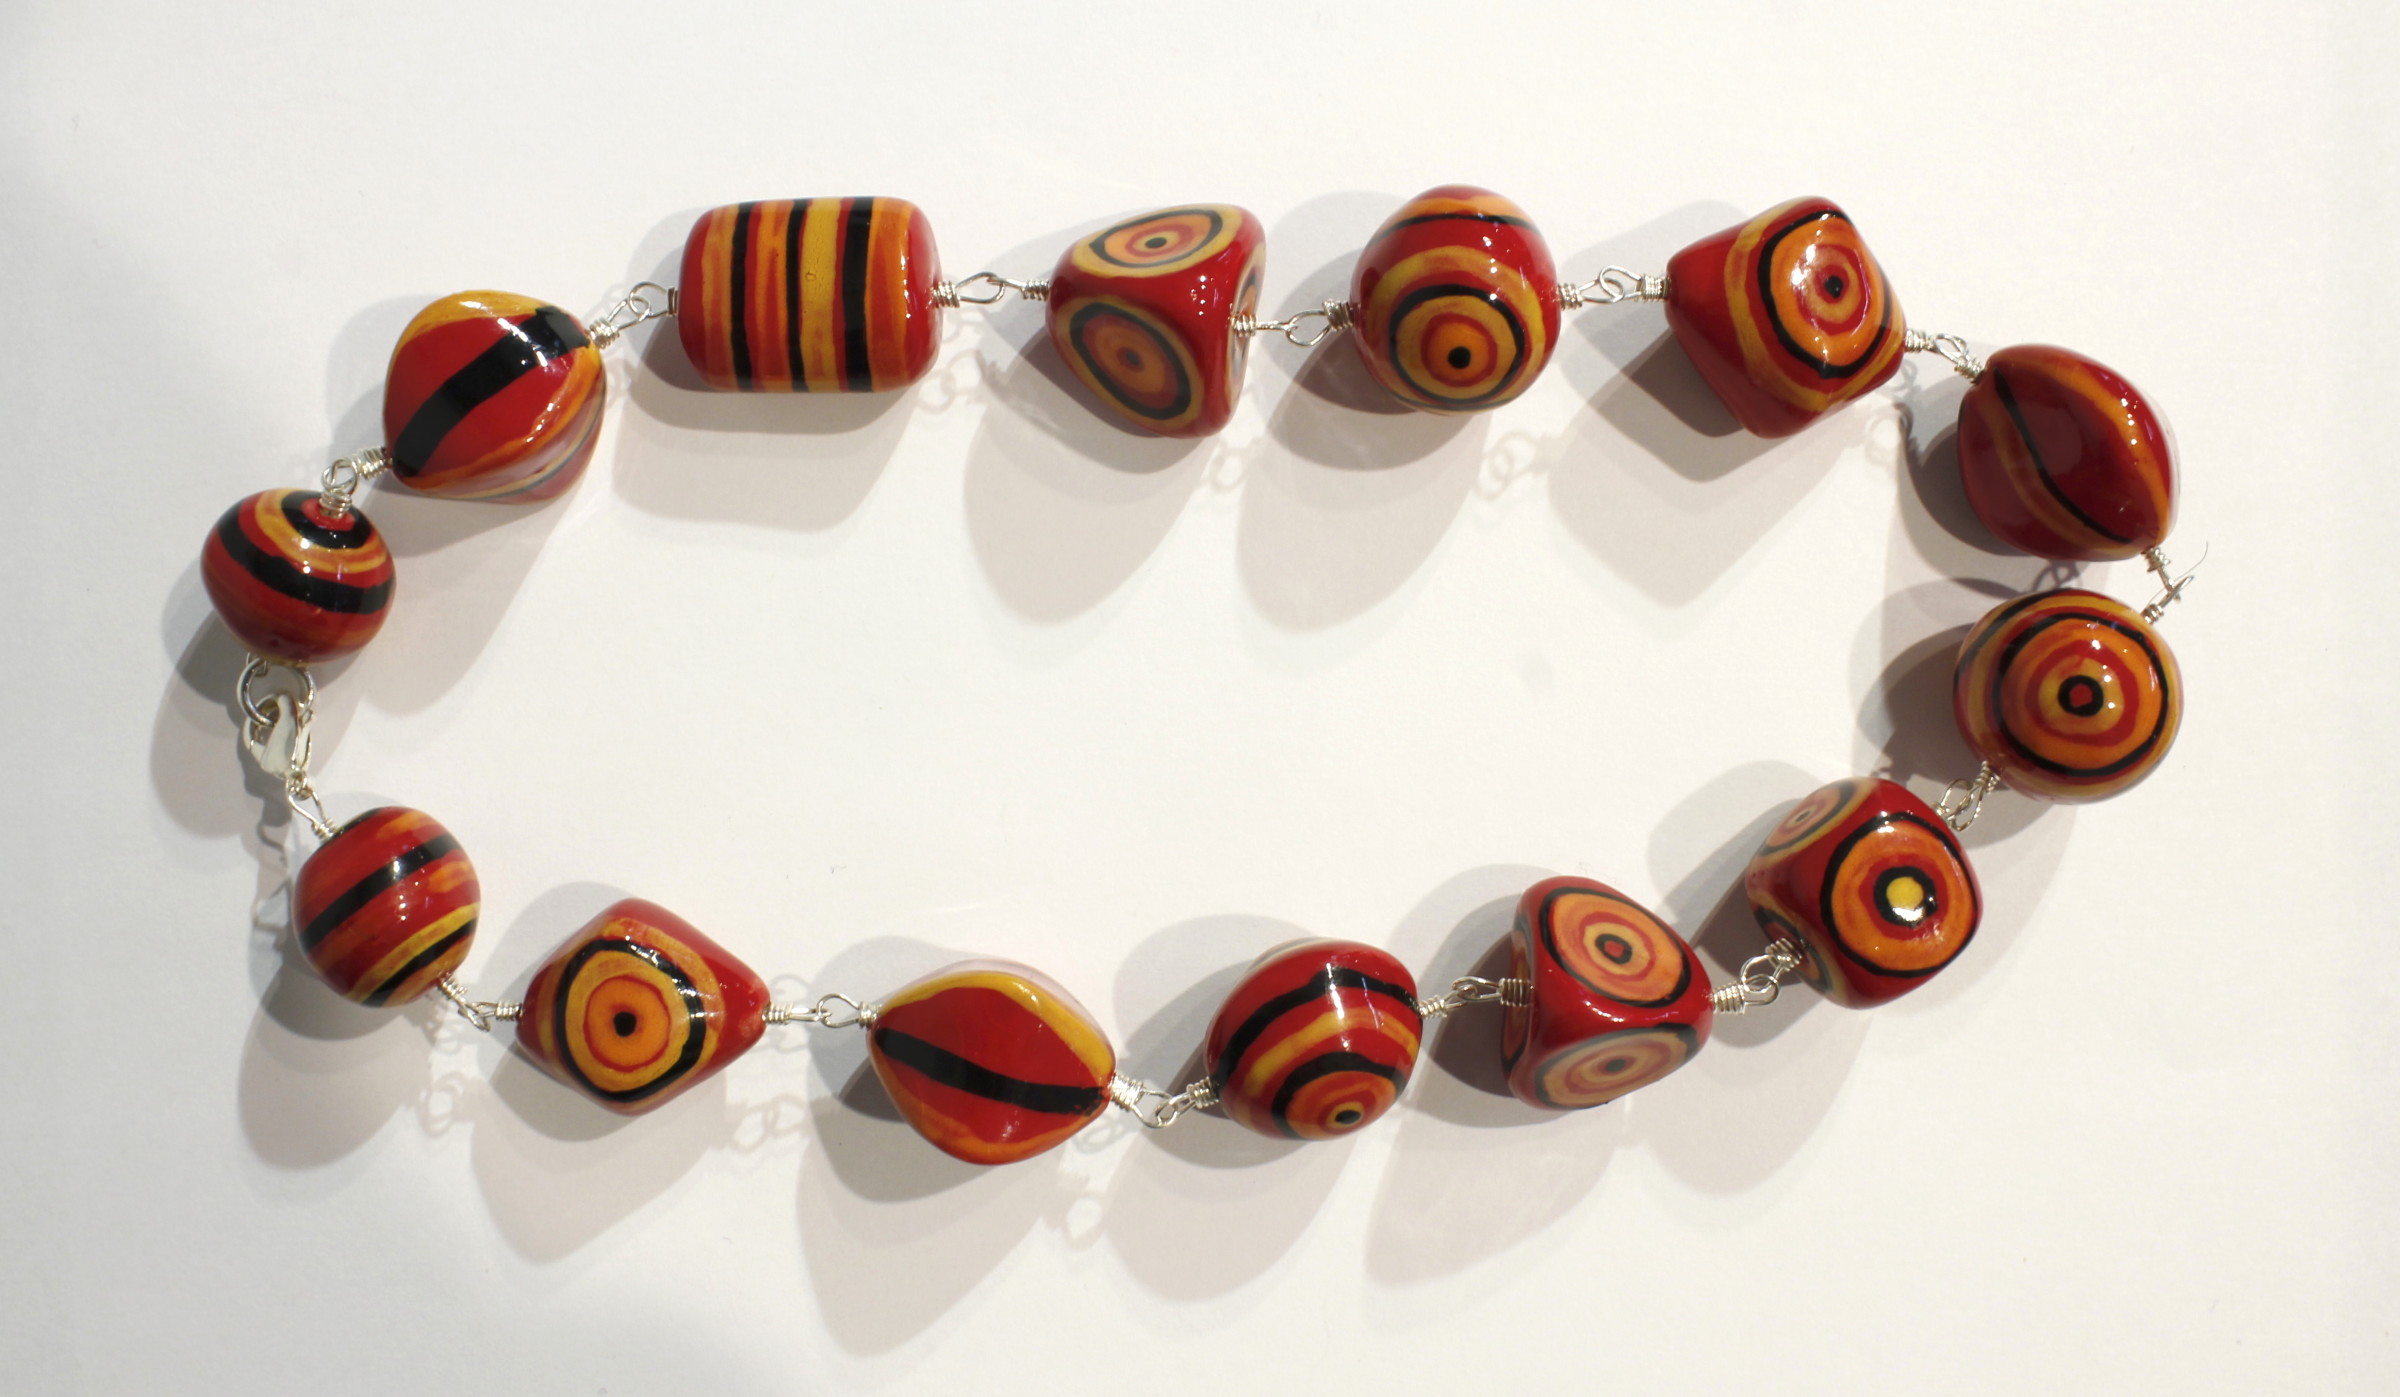 "<span class=""link fancybox-details-link""><a href=""/artists/146-elinor-lamond/works/4912-elinor-lamond-red-and-orange-striped-necklace-2017/"">View Detail Page</a></span><div class=""artist""><strong>Elinor Lamond</strong></div> <div class=""title""><em>Red and Orange Striped Necklace </em>, 2017</div> <div class=""medium"">handmade ceramic beads</div><div class=""copyright_line"">Copyright The Artist</div>"